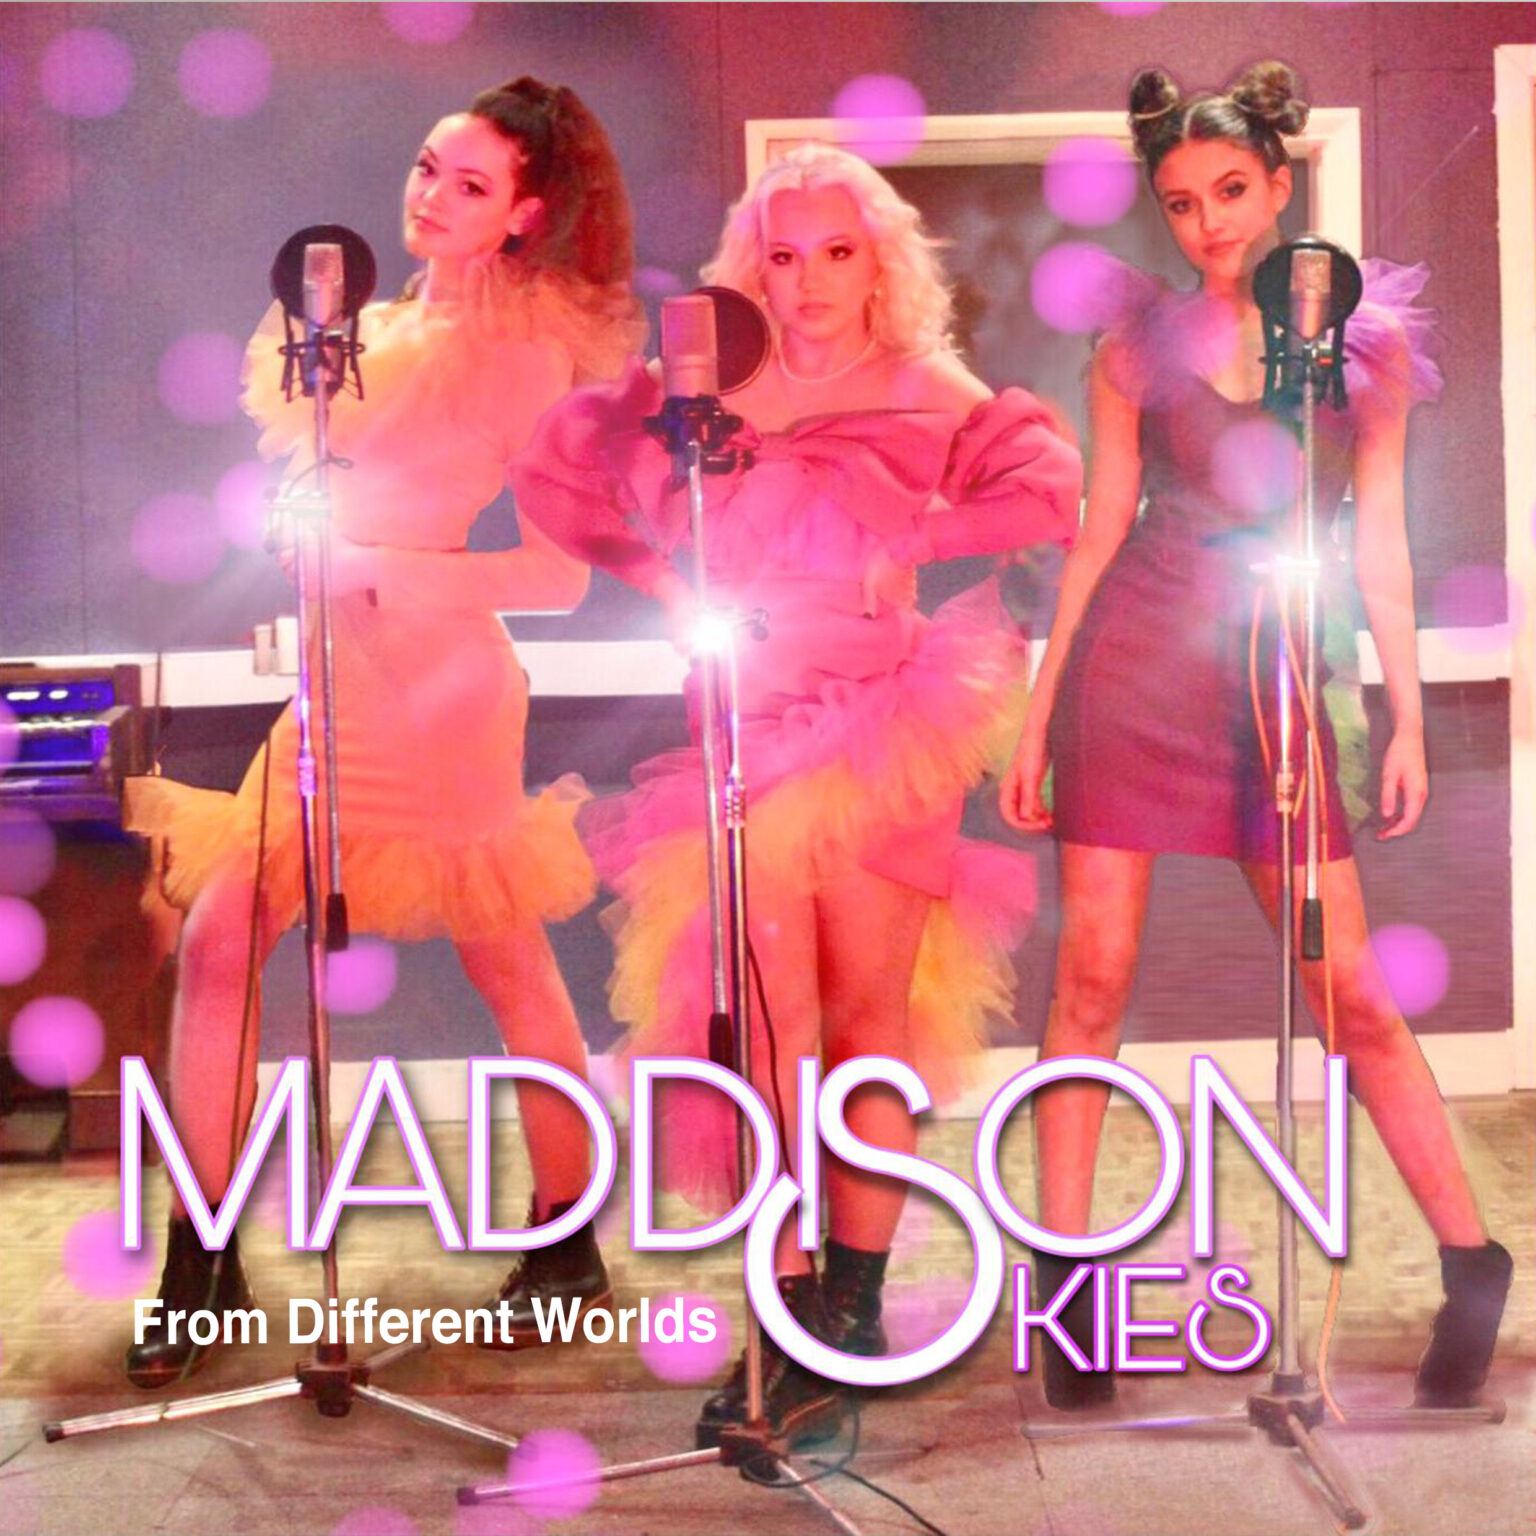 """Maddison Skies – """"From Different Worlds"""""""